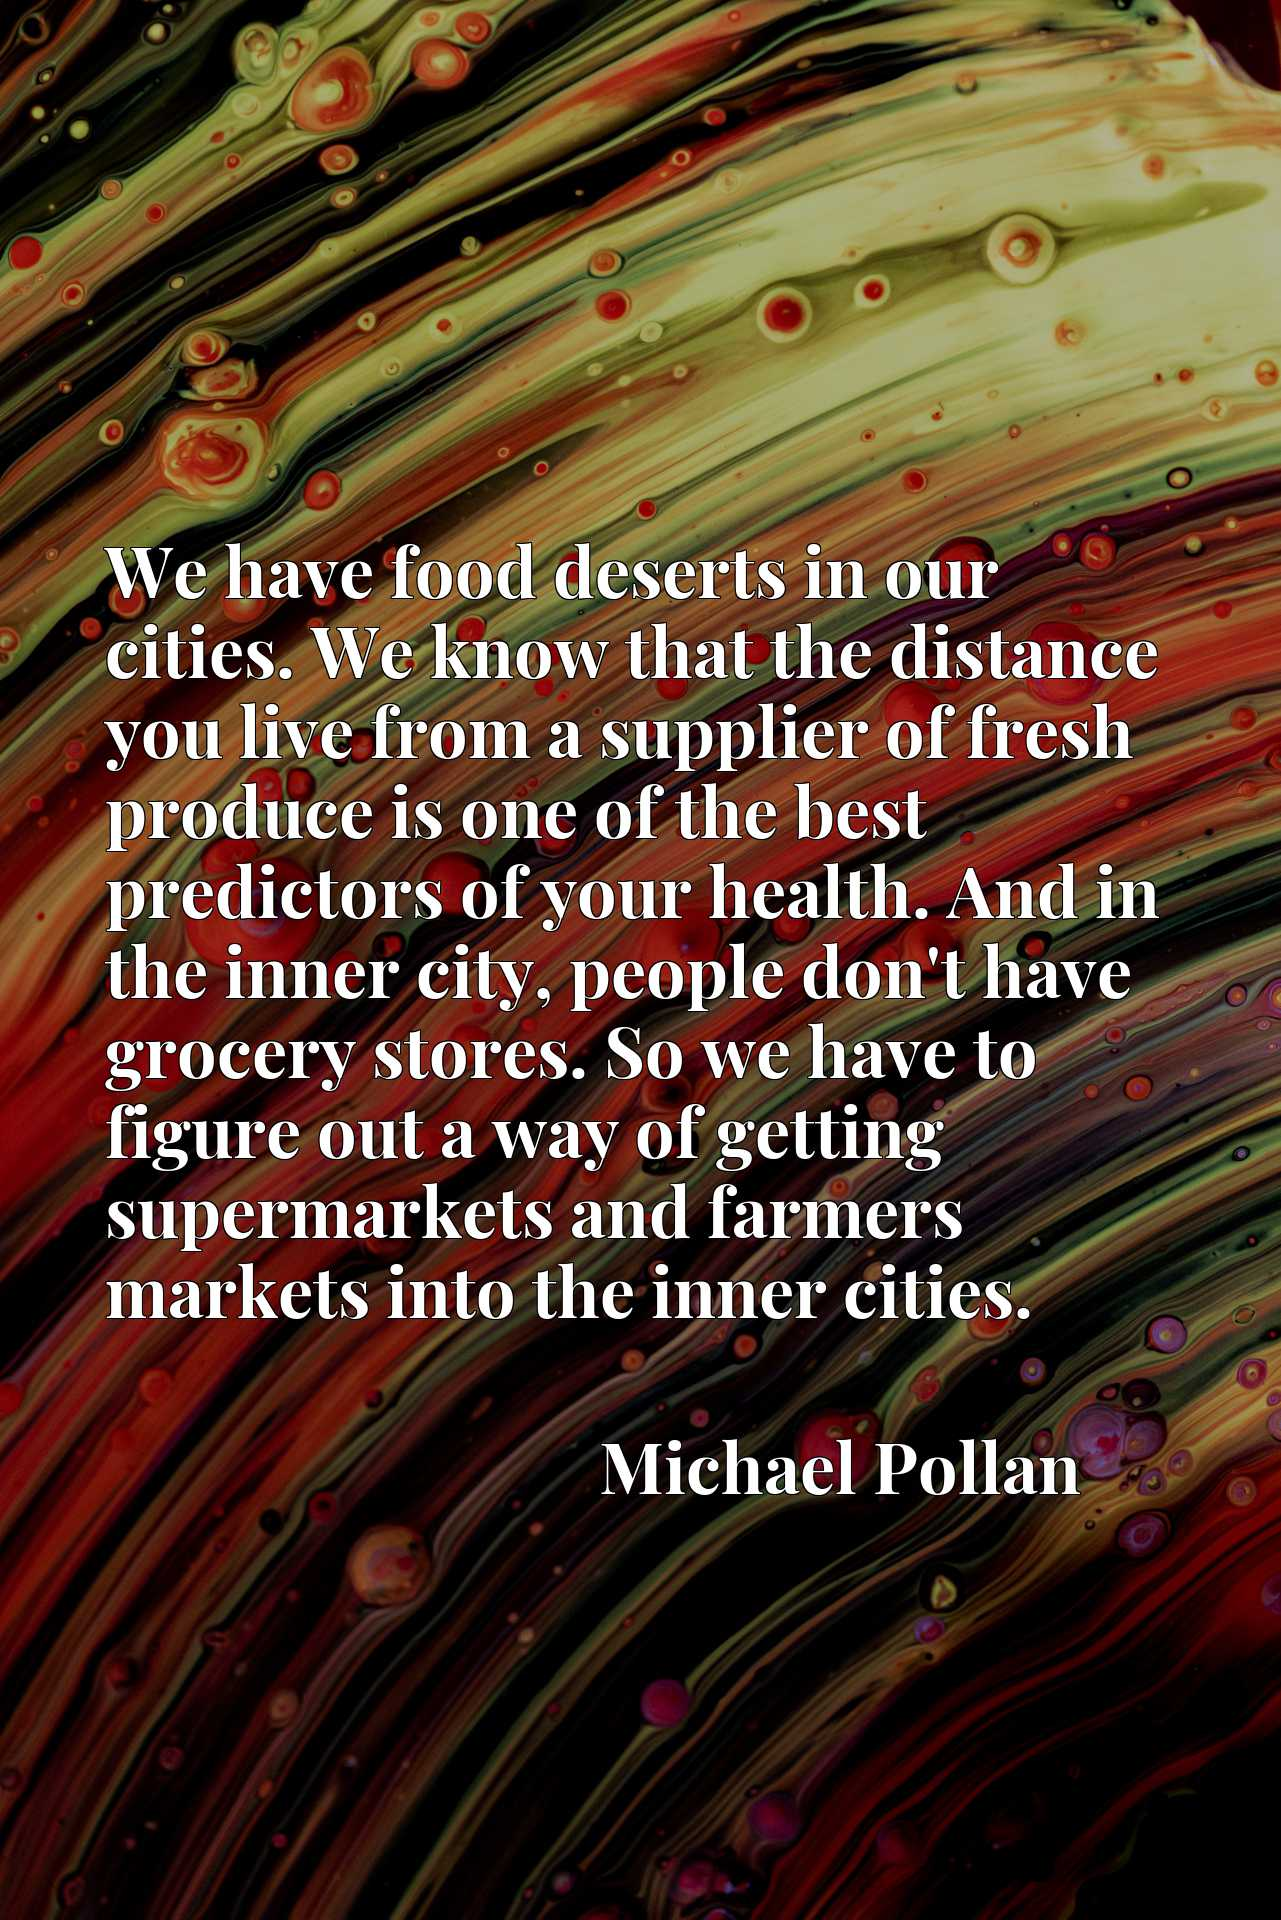 We have food deserts in our cities. We know that the distance you live from a supplier of fresh produce is one of the best predictors of your health. And in the inner city, people don't have grocery stores. So we have to figure out a way of getting supermarkets and farmers markets into the inner cities.